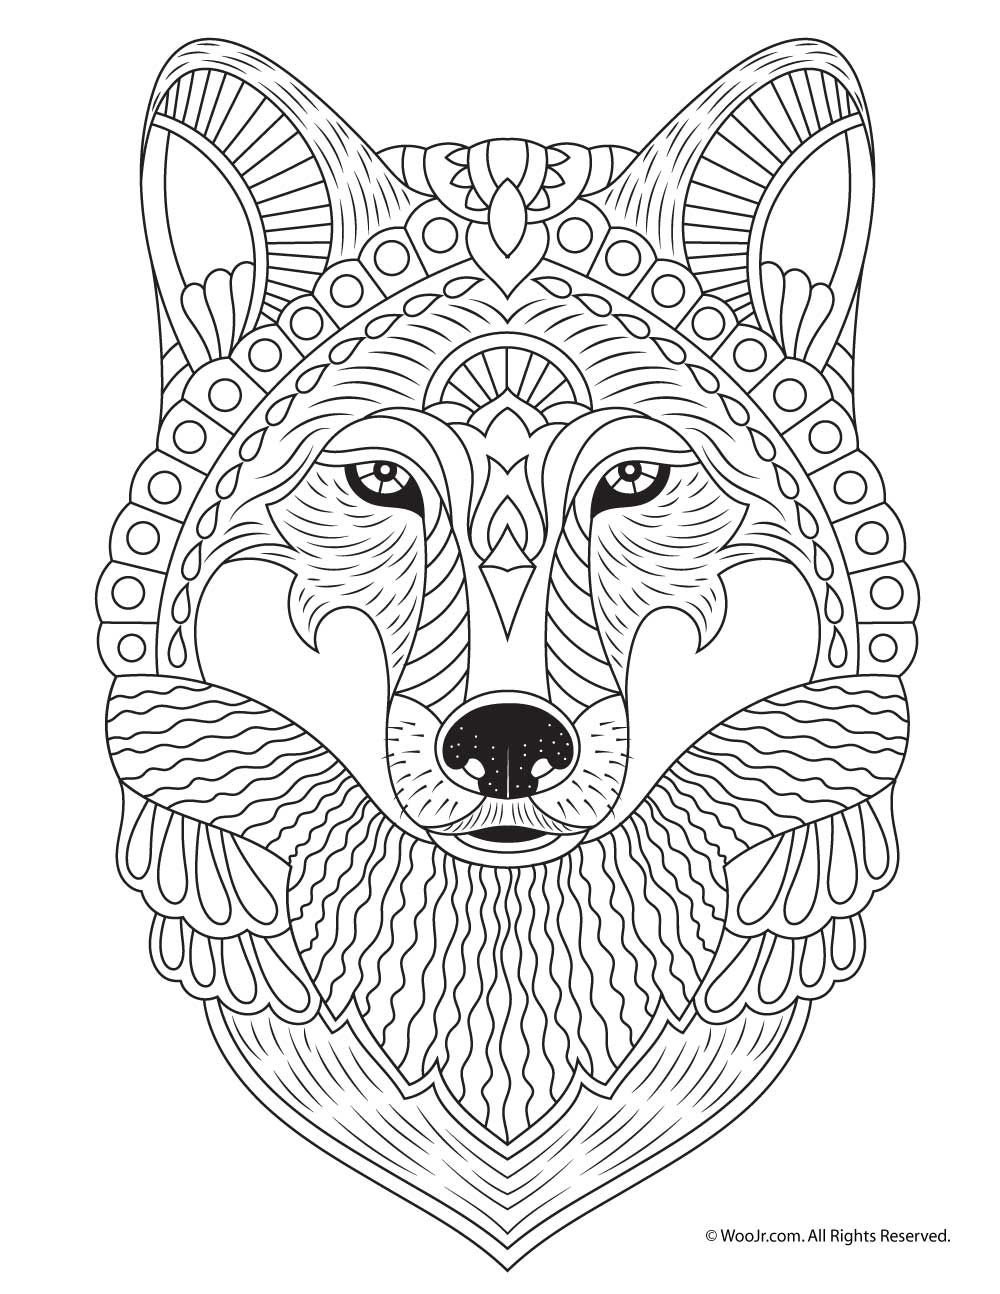 Wolf Adult Coloring Page (With images) | Animal coloring ... | mandala coloring pages for adults animals